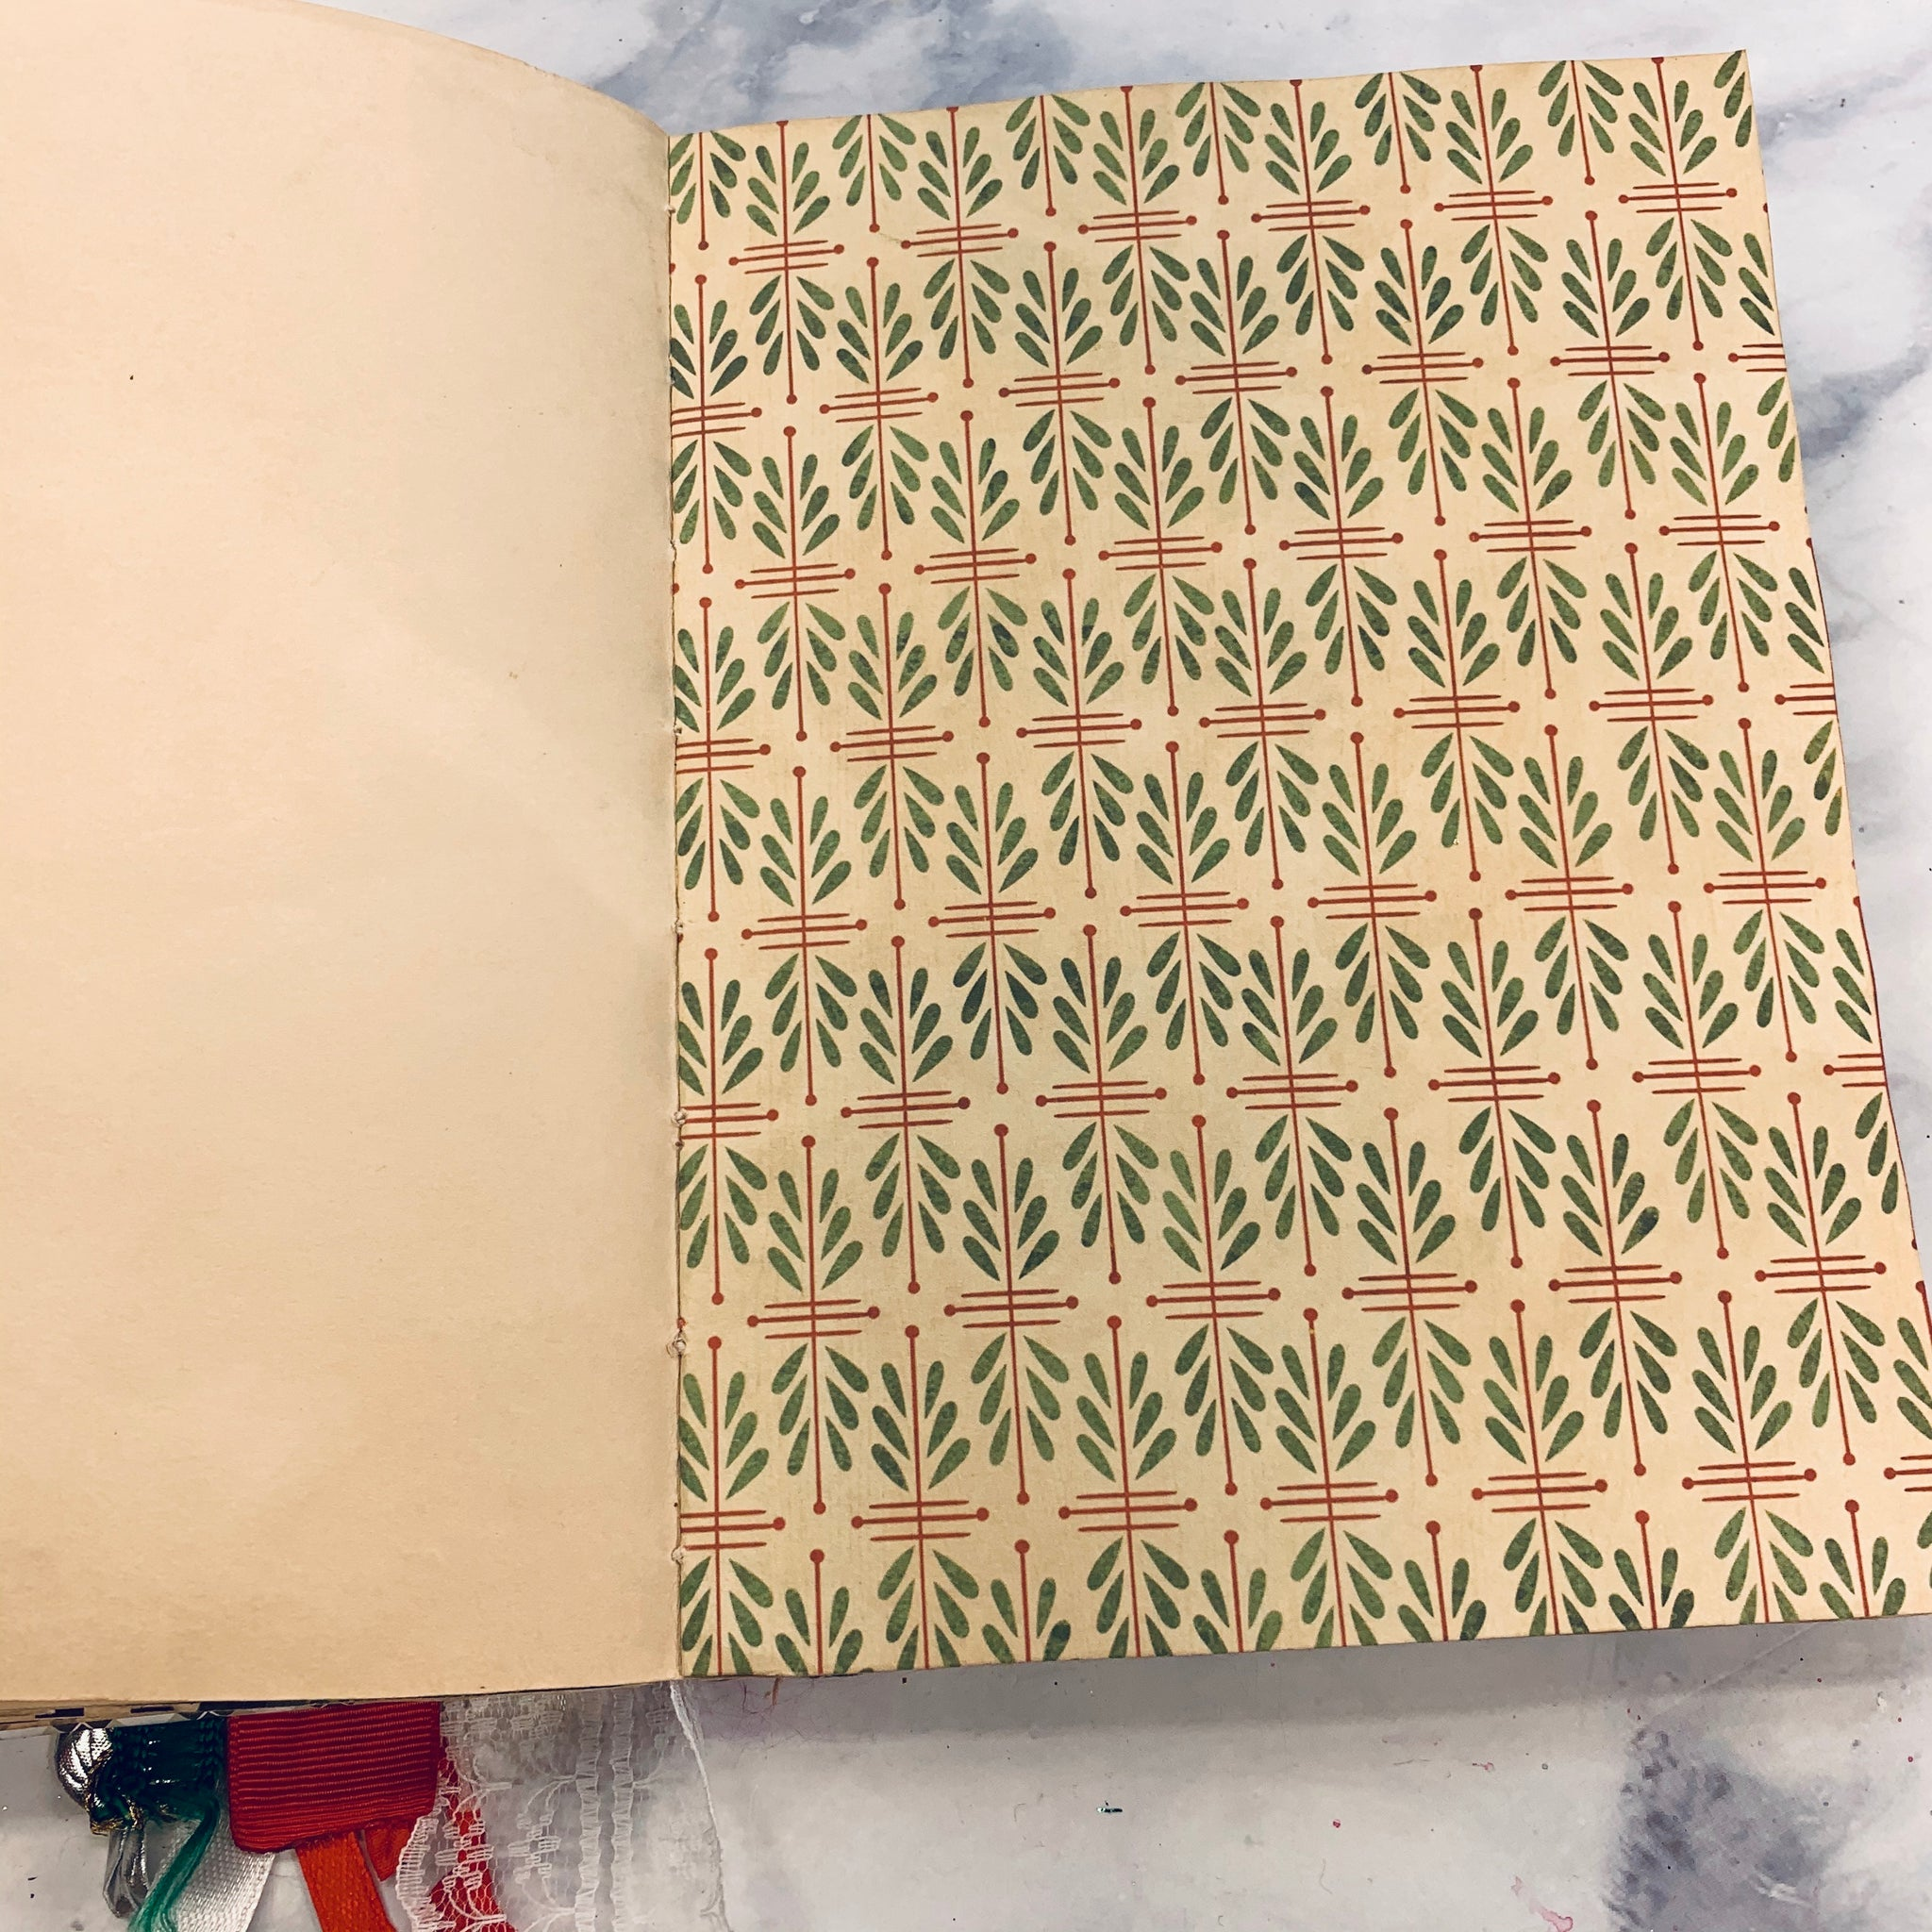 Christmas Copic Stitch Journal by Mehataj from India